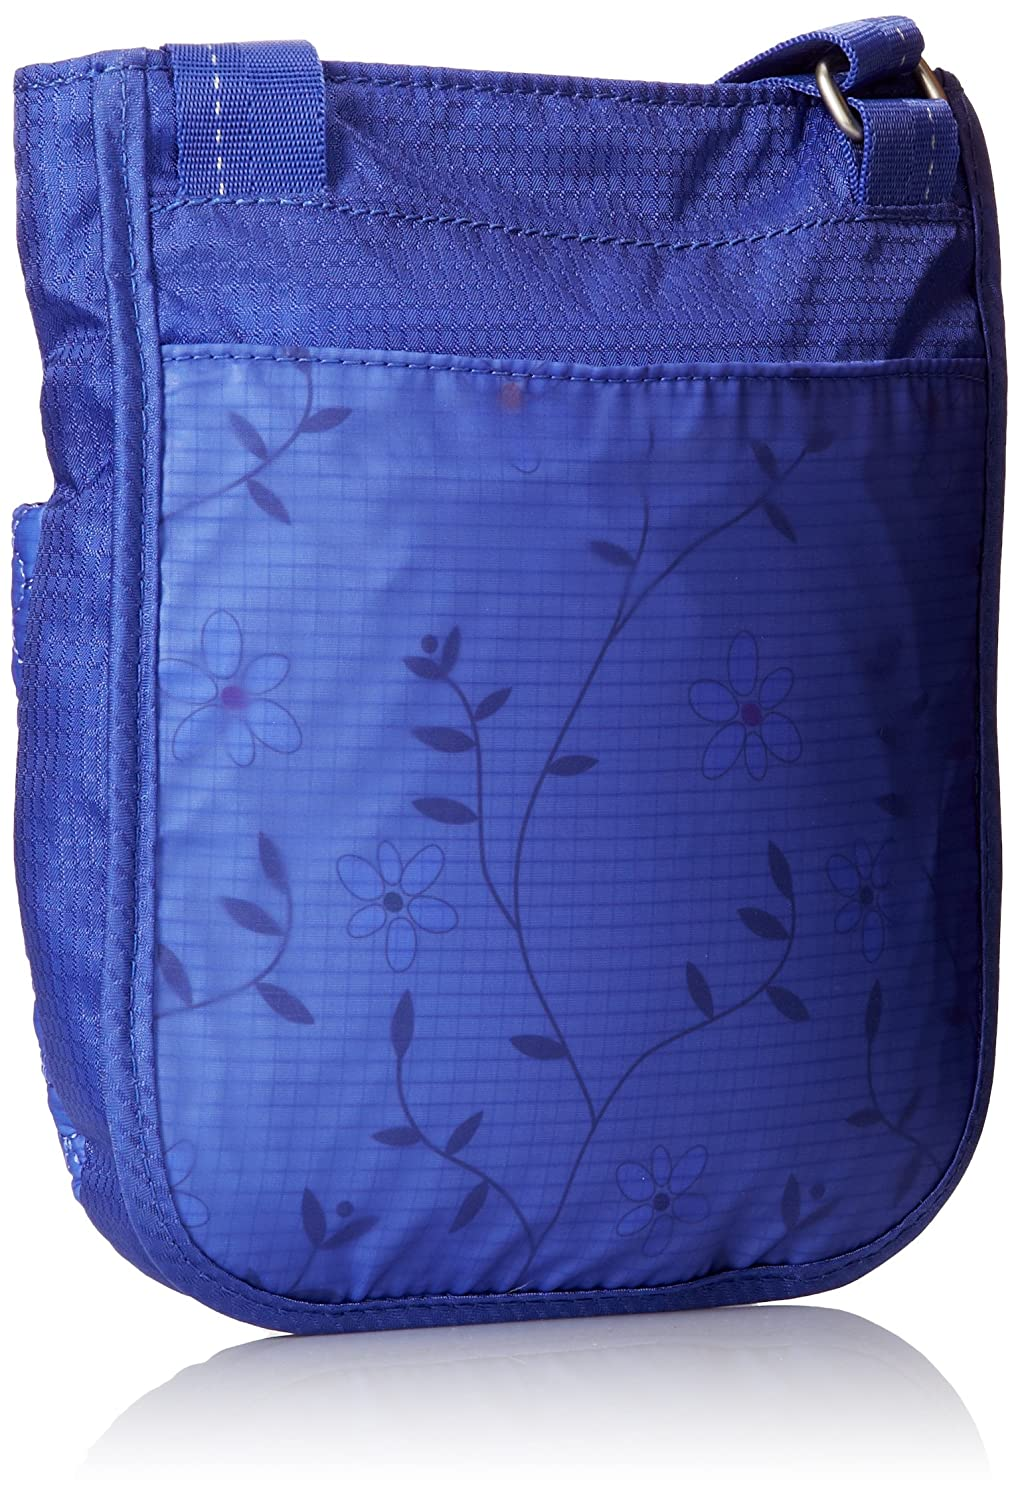 Sherpani Prima Le Messenger Bags, Blue Bell